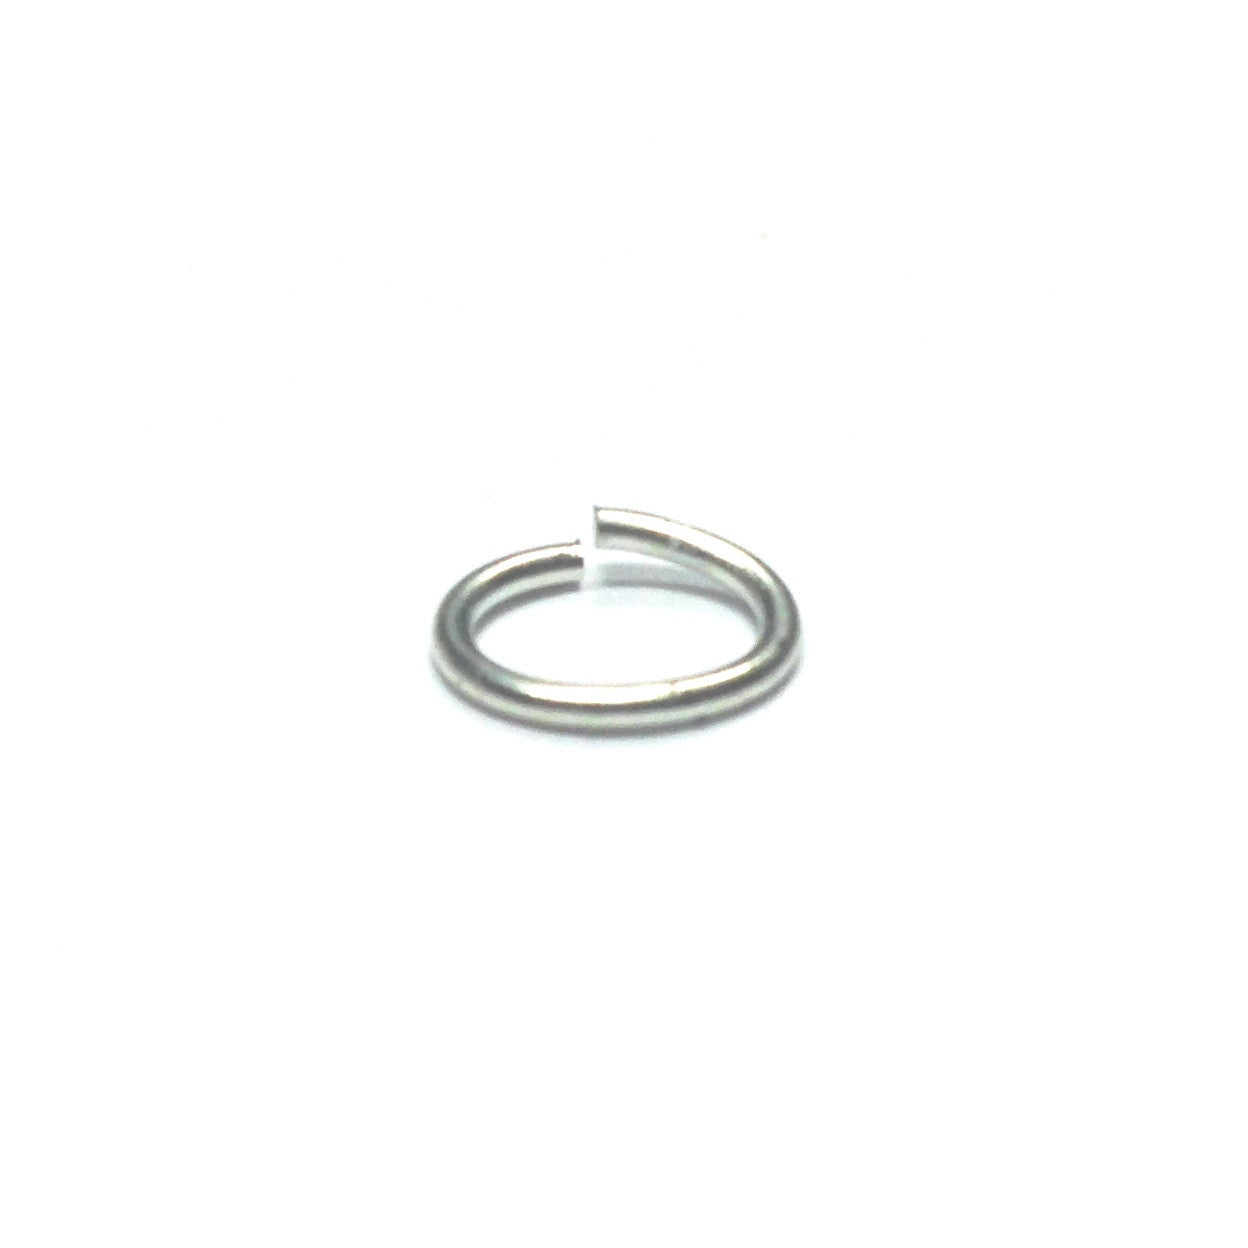 00 (6X8.5MM) .040 Oval Nickel Jump Ring 1 Lb. (~3744 pieces)